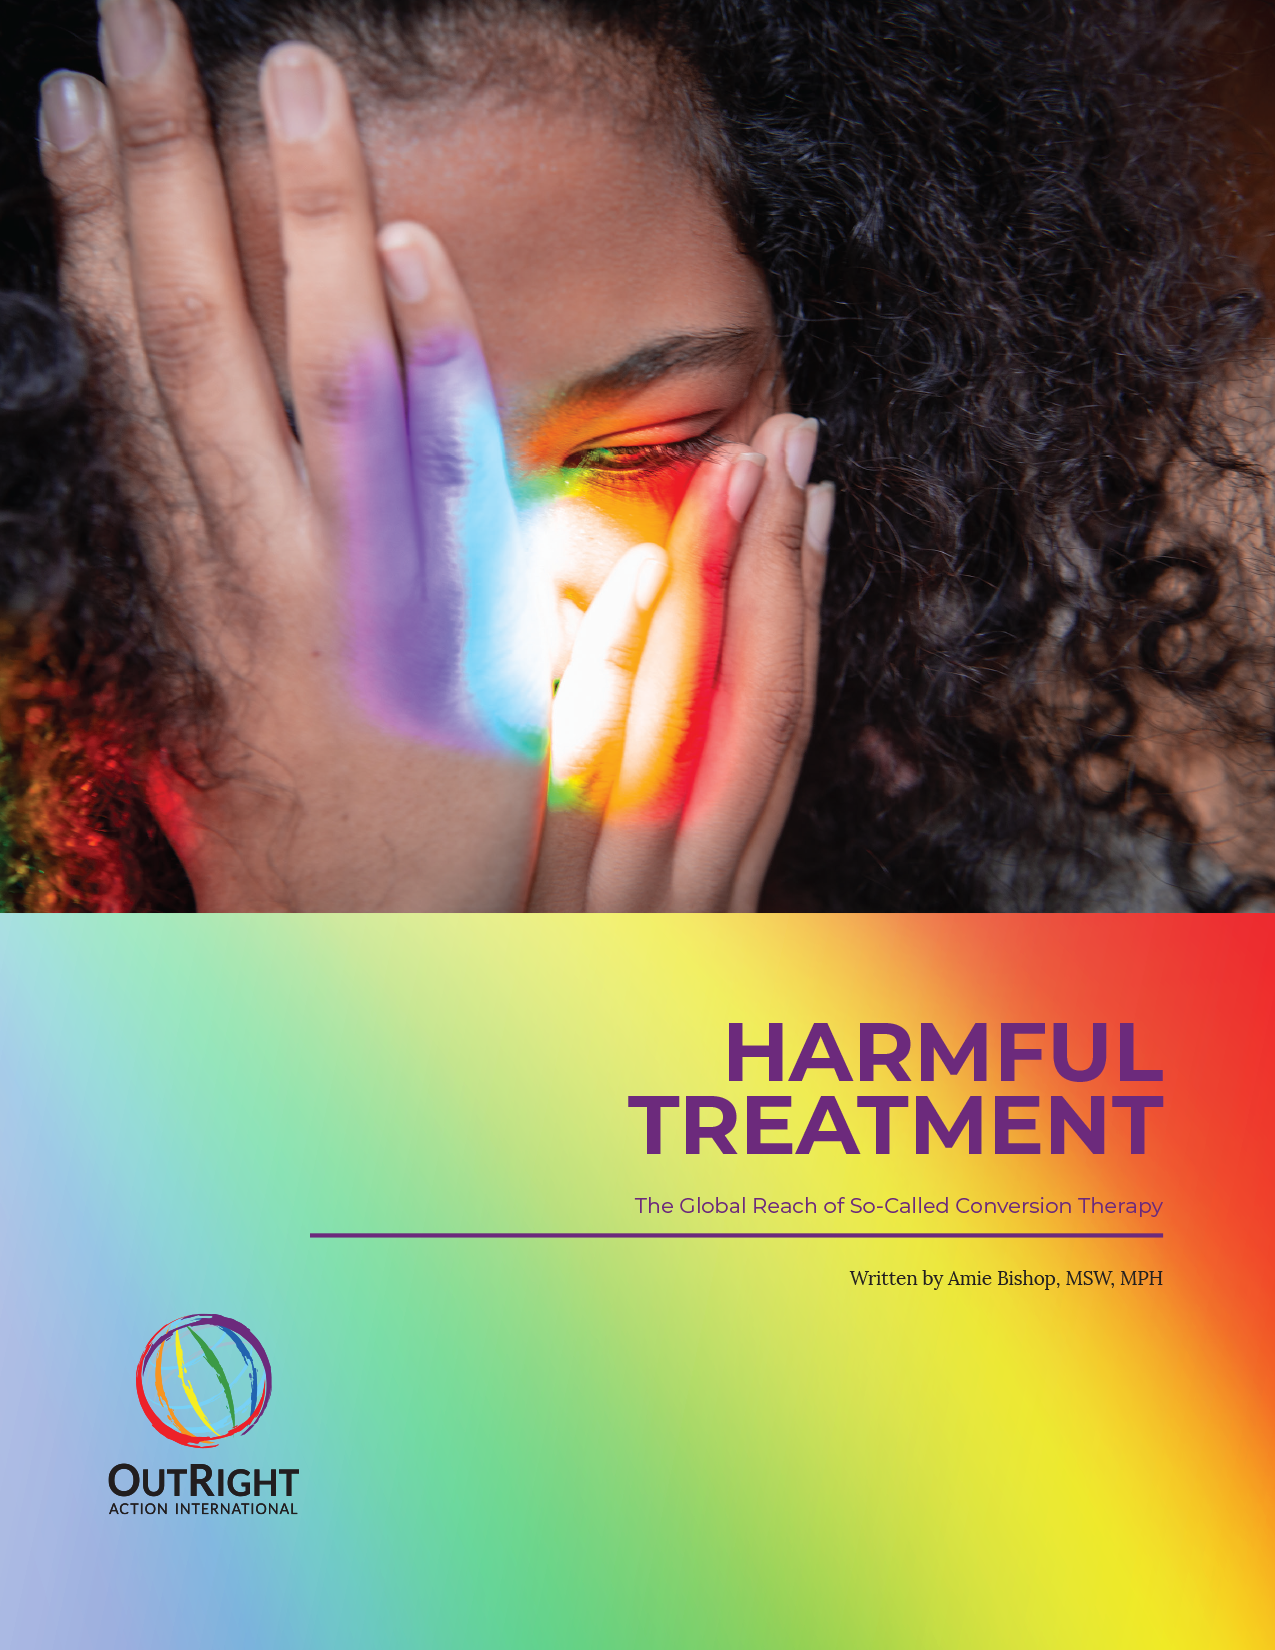 The Global Reach of So-Called Conversion Therapy